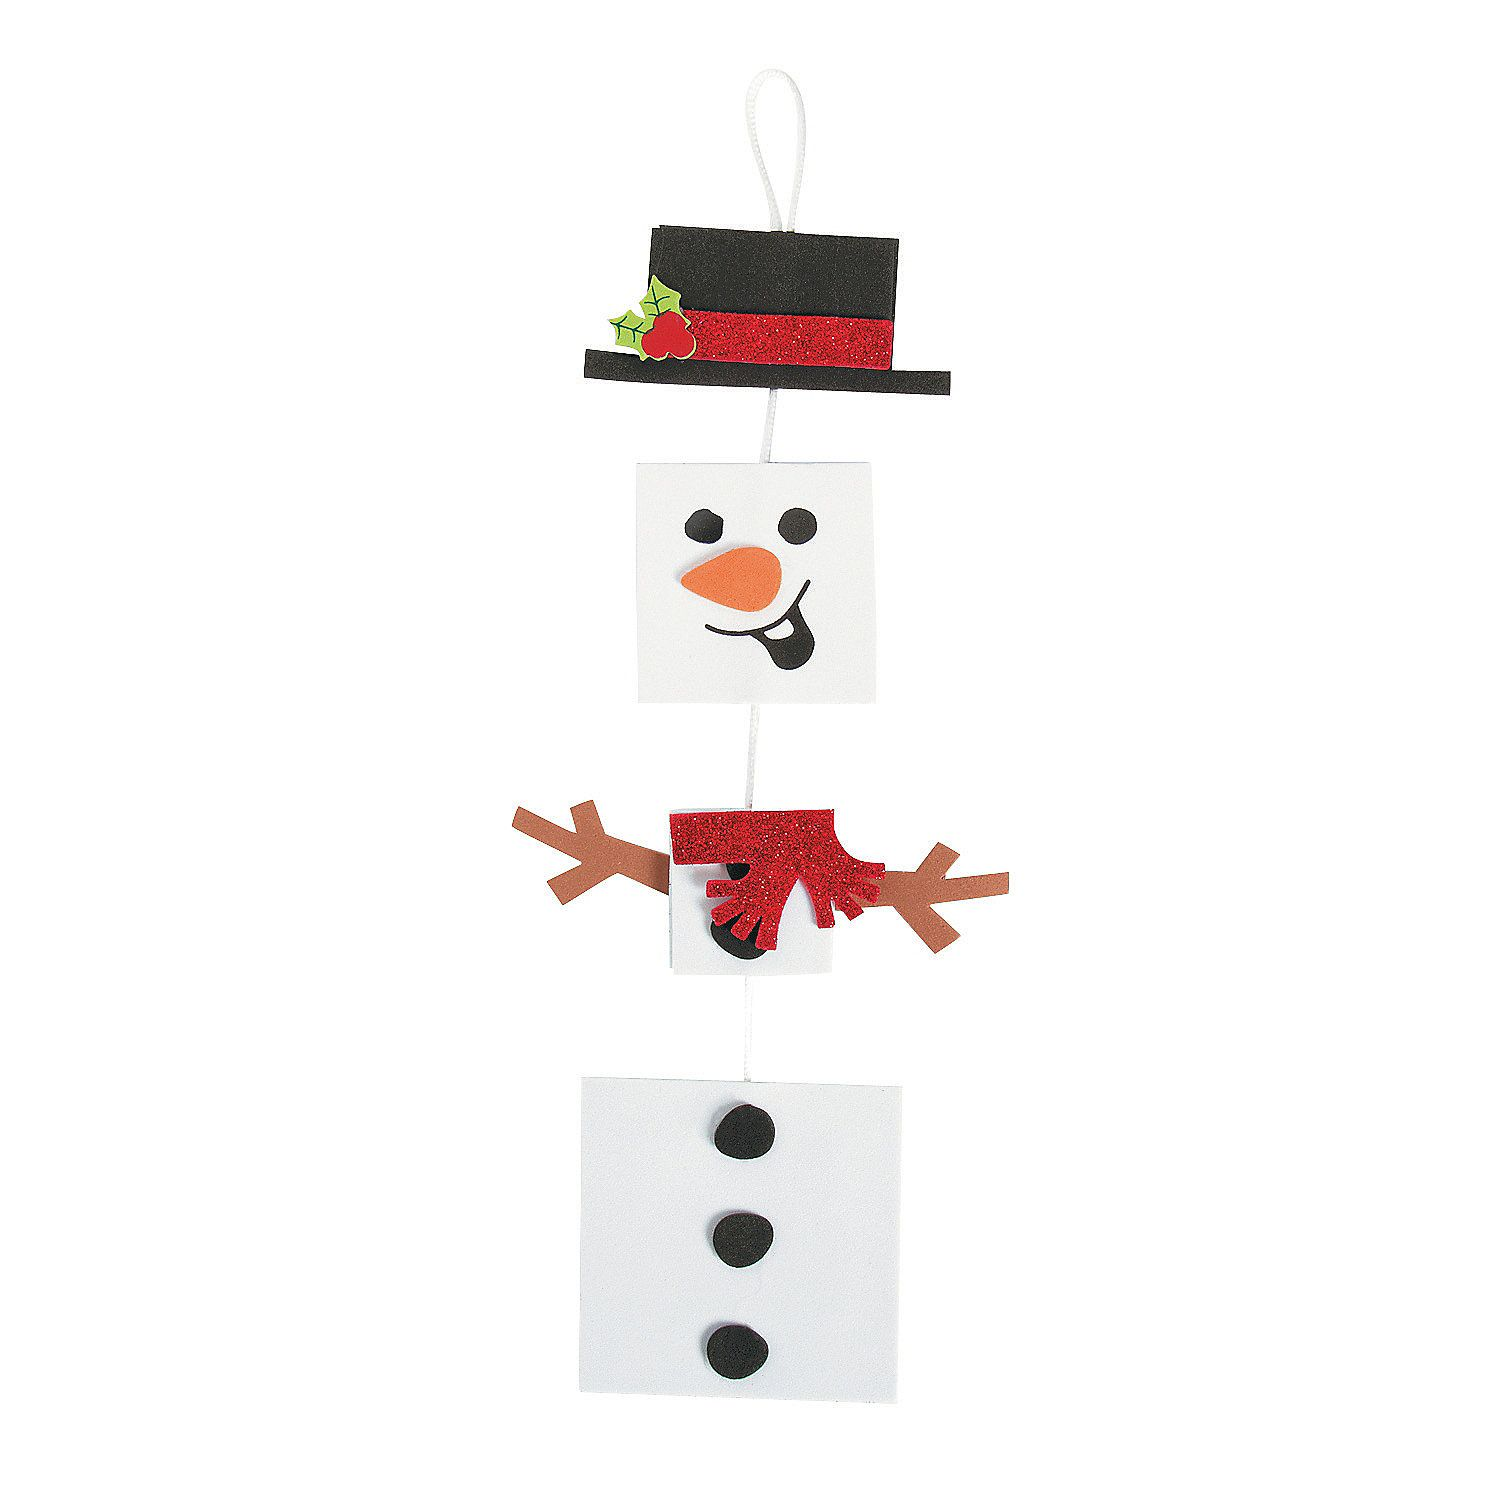 Square Dangling Snowman Sign Craft Kit  Orientaltradingcom 12$799